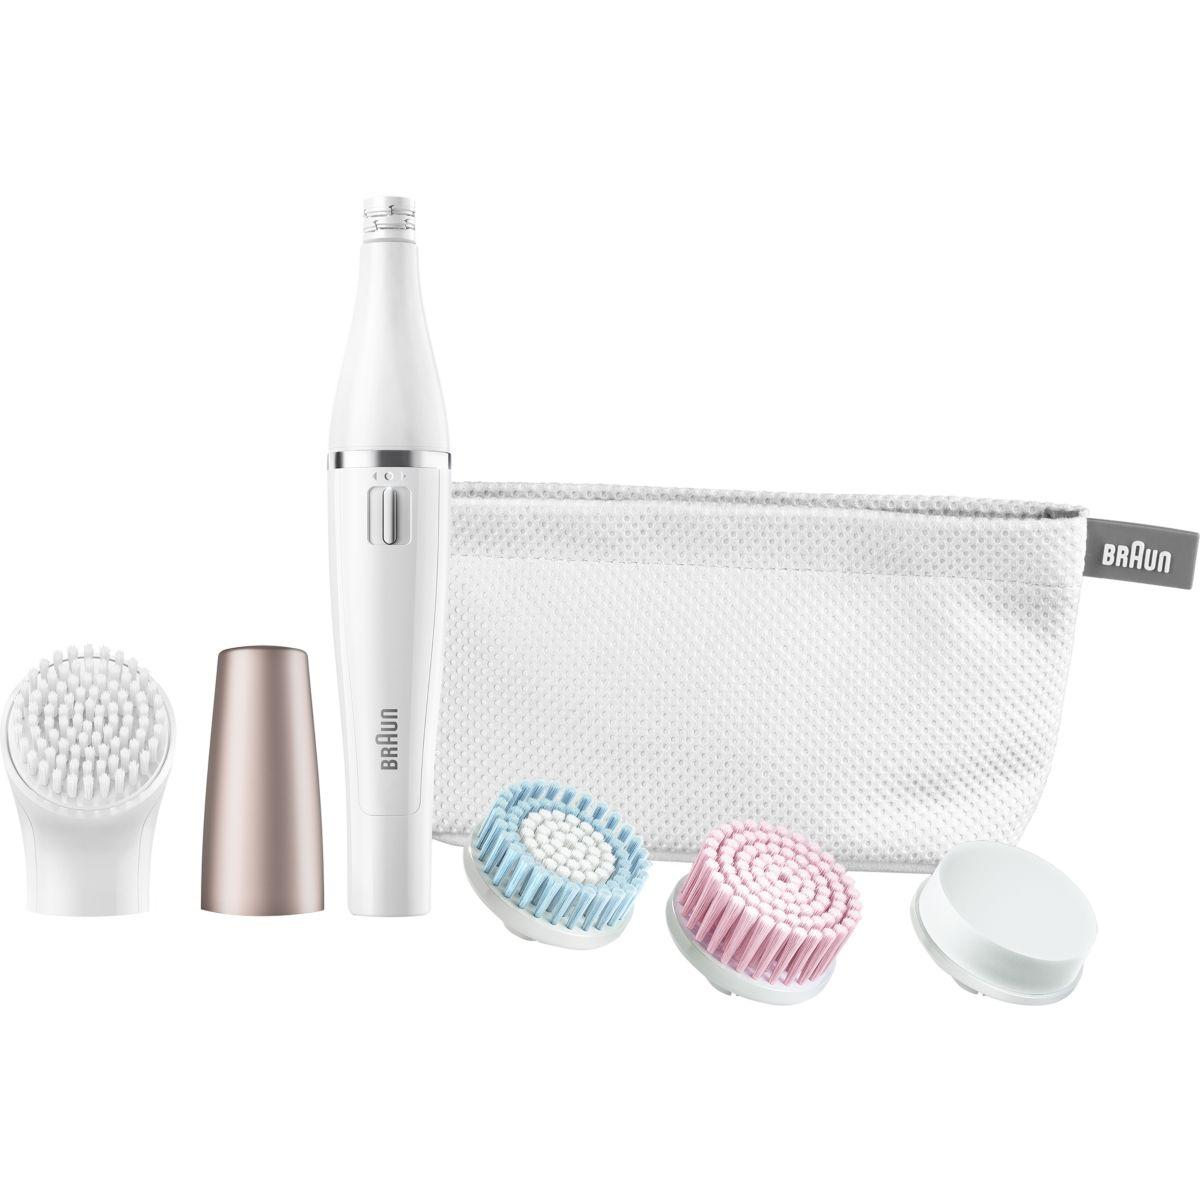 Brosse braun brosse visage face se810 (photo)